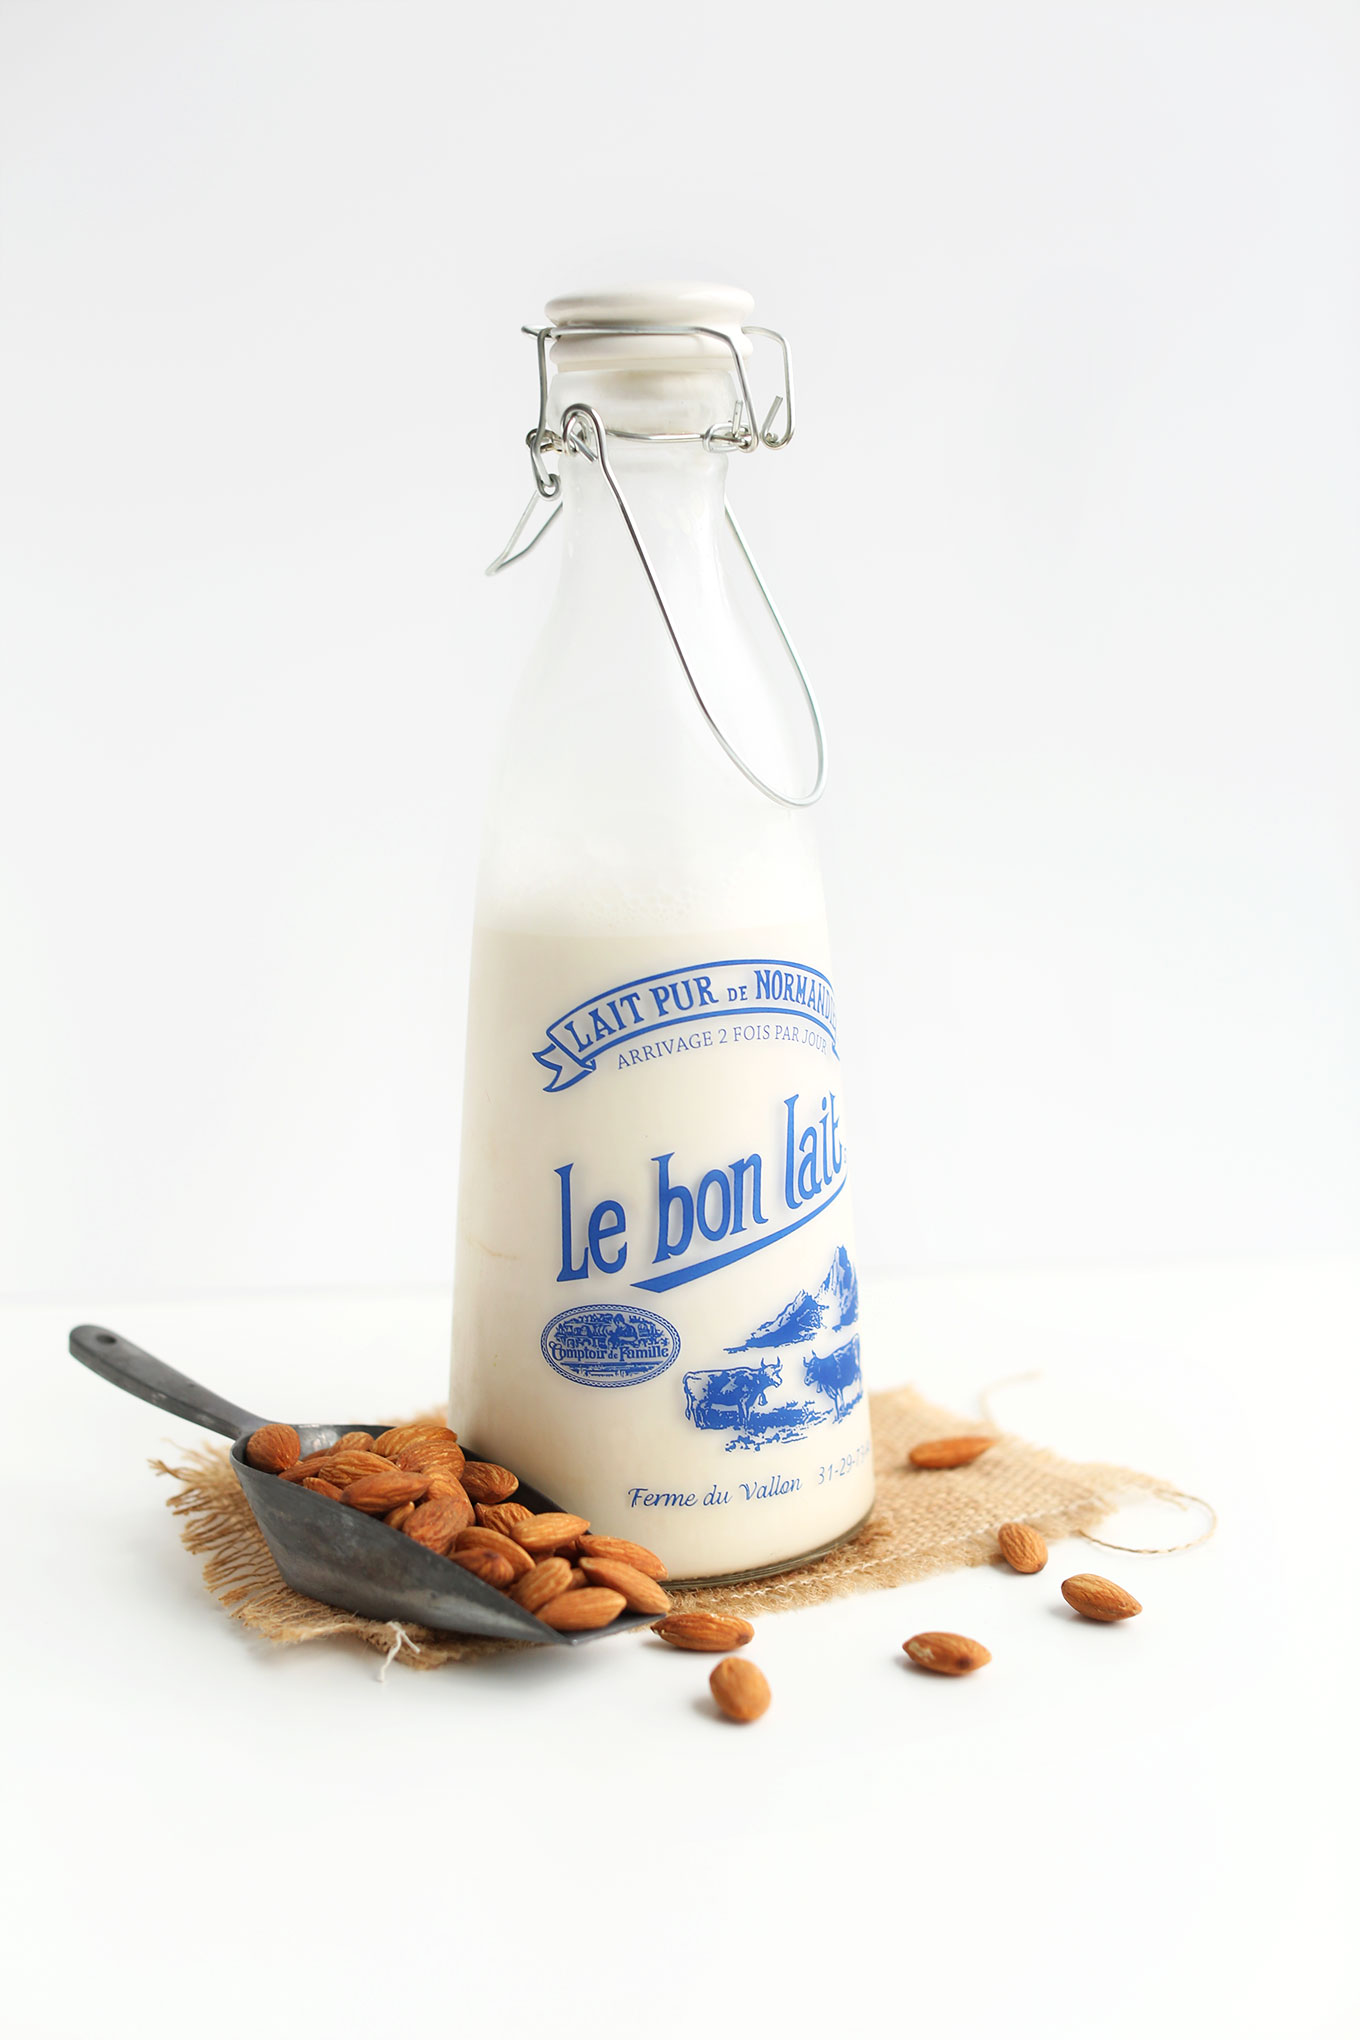 Old-fashioned milk jug filled with homemade almond milk